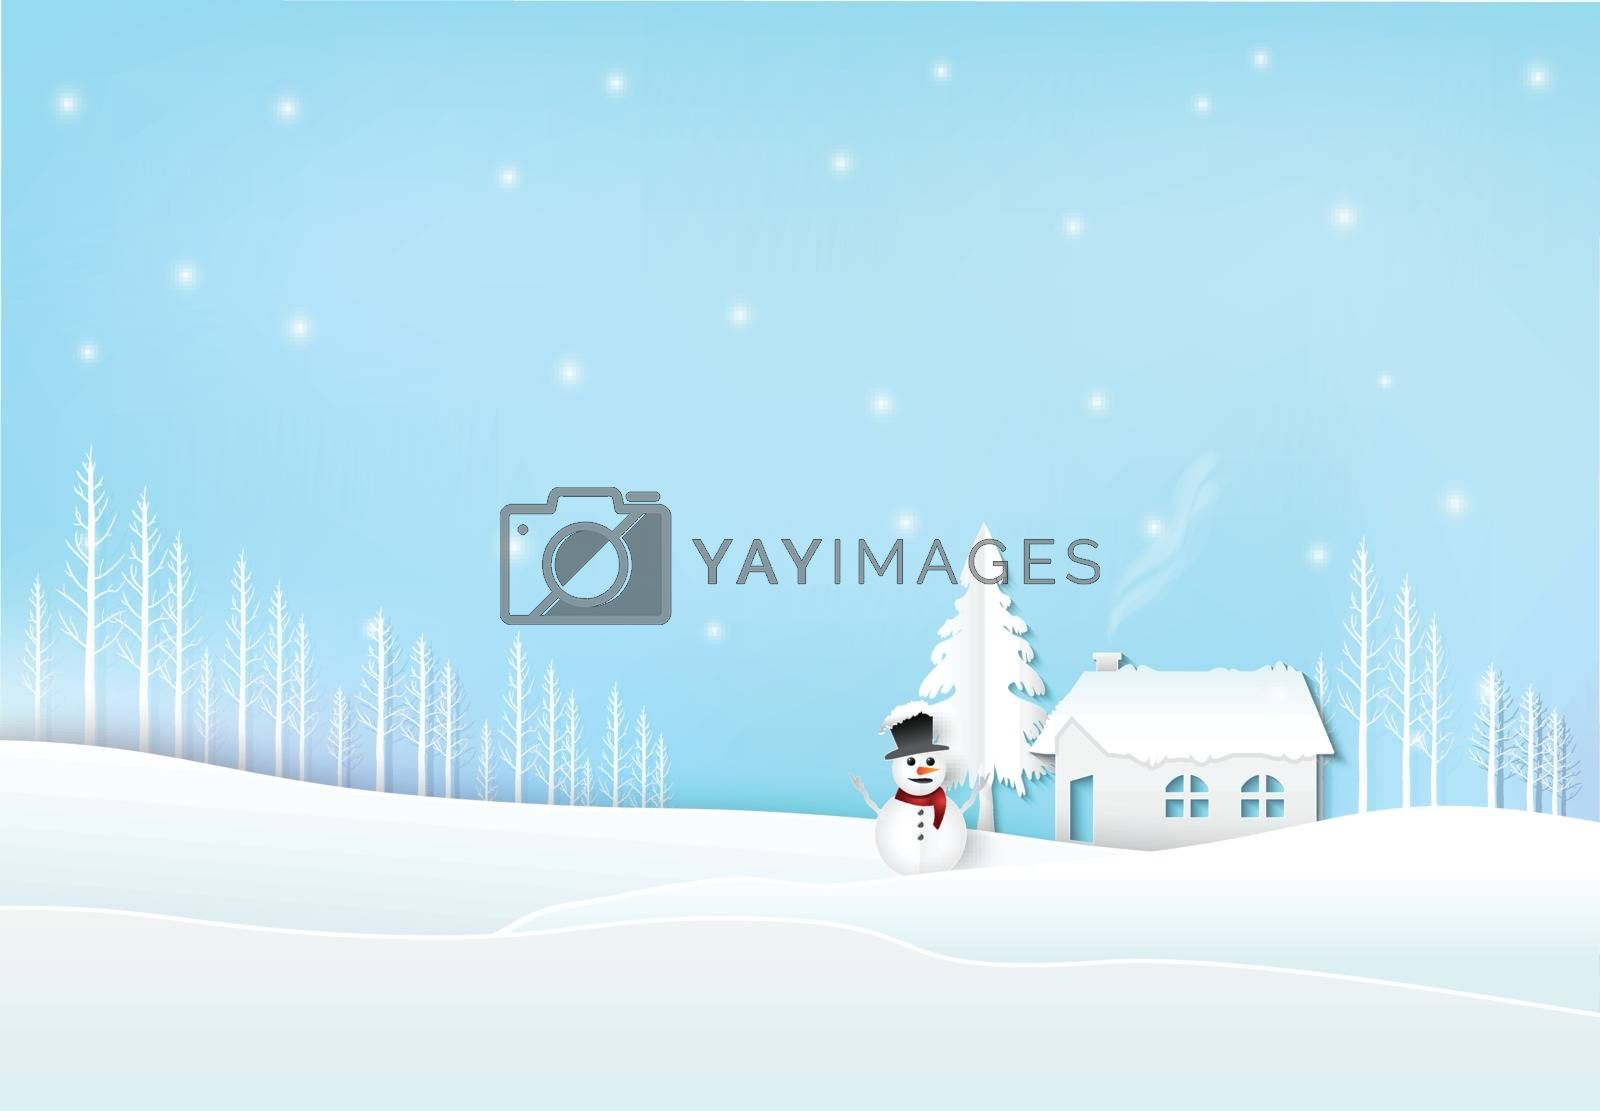 Winter holiday cottage with snow and snowman. Christmas season paper art style illustration.